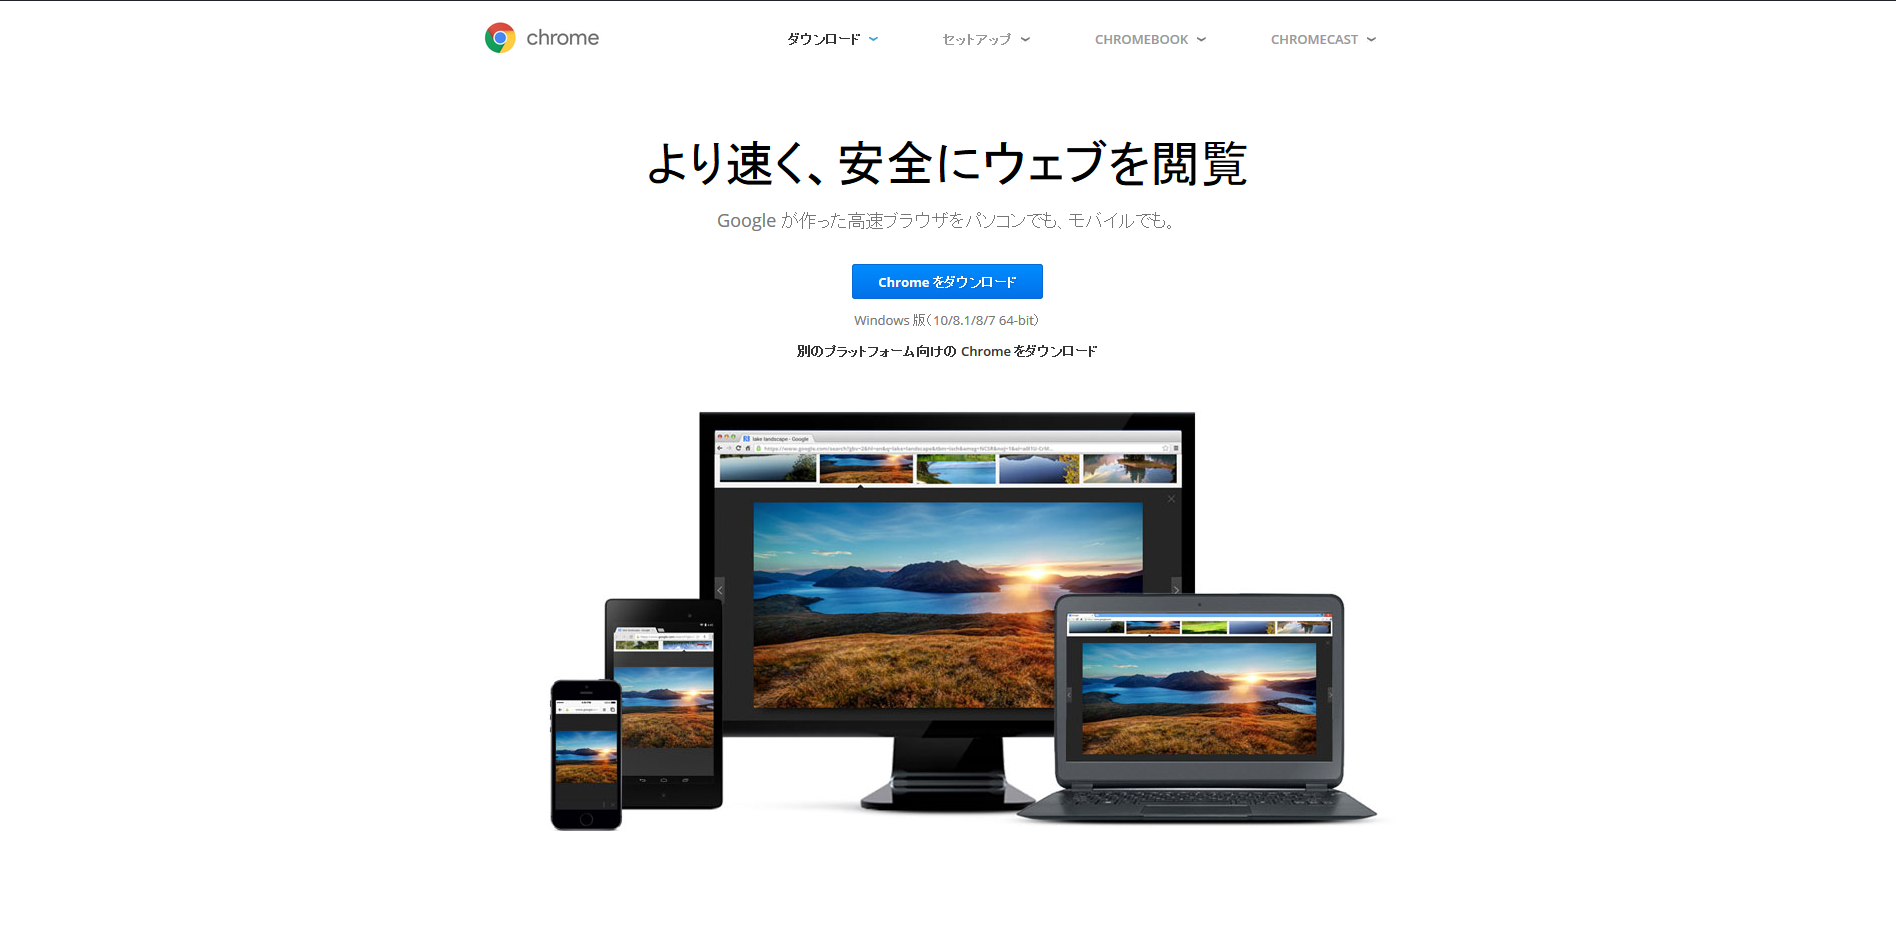 Google Chrome64bit版の紹介